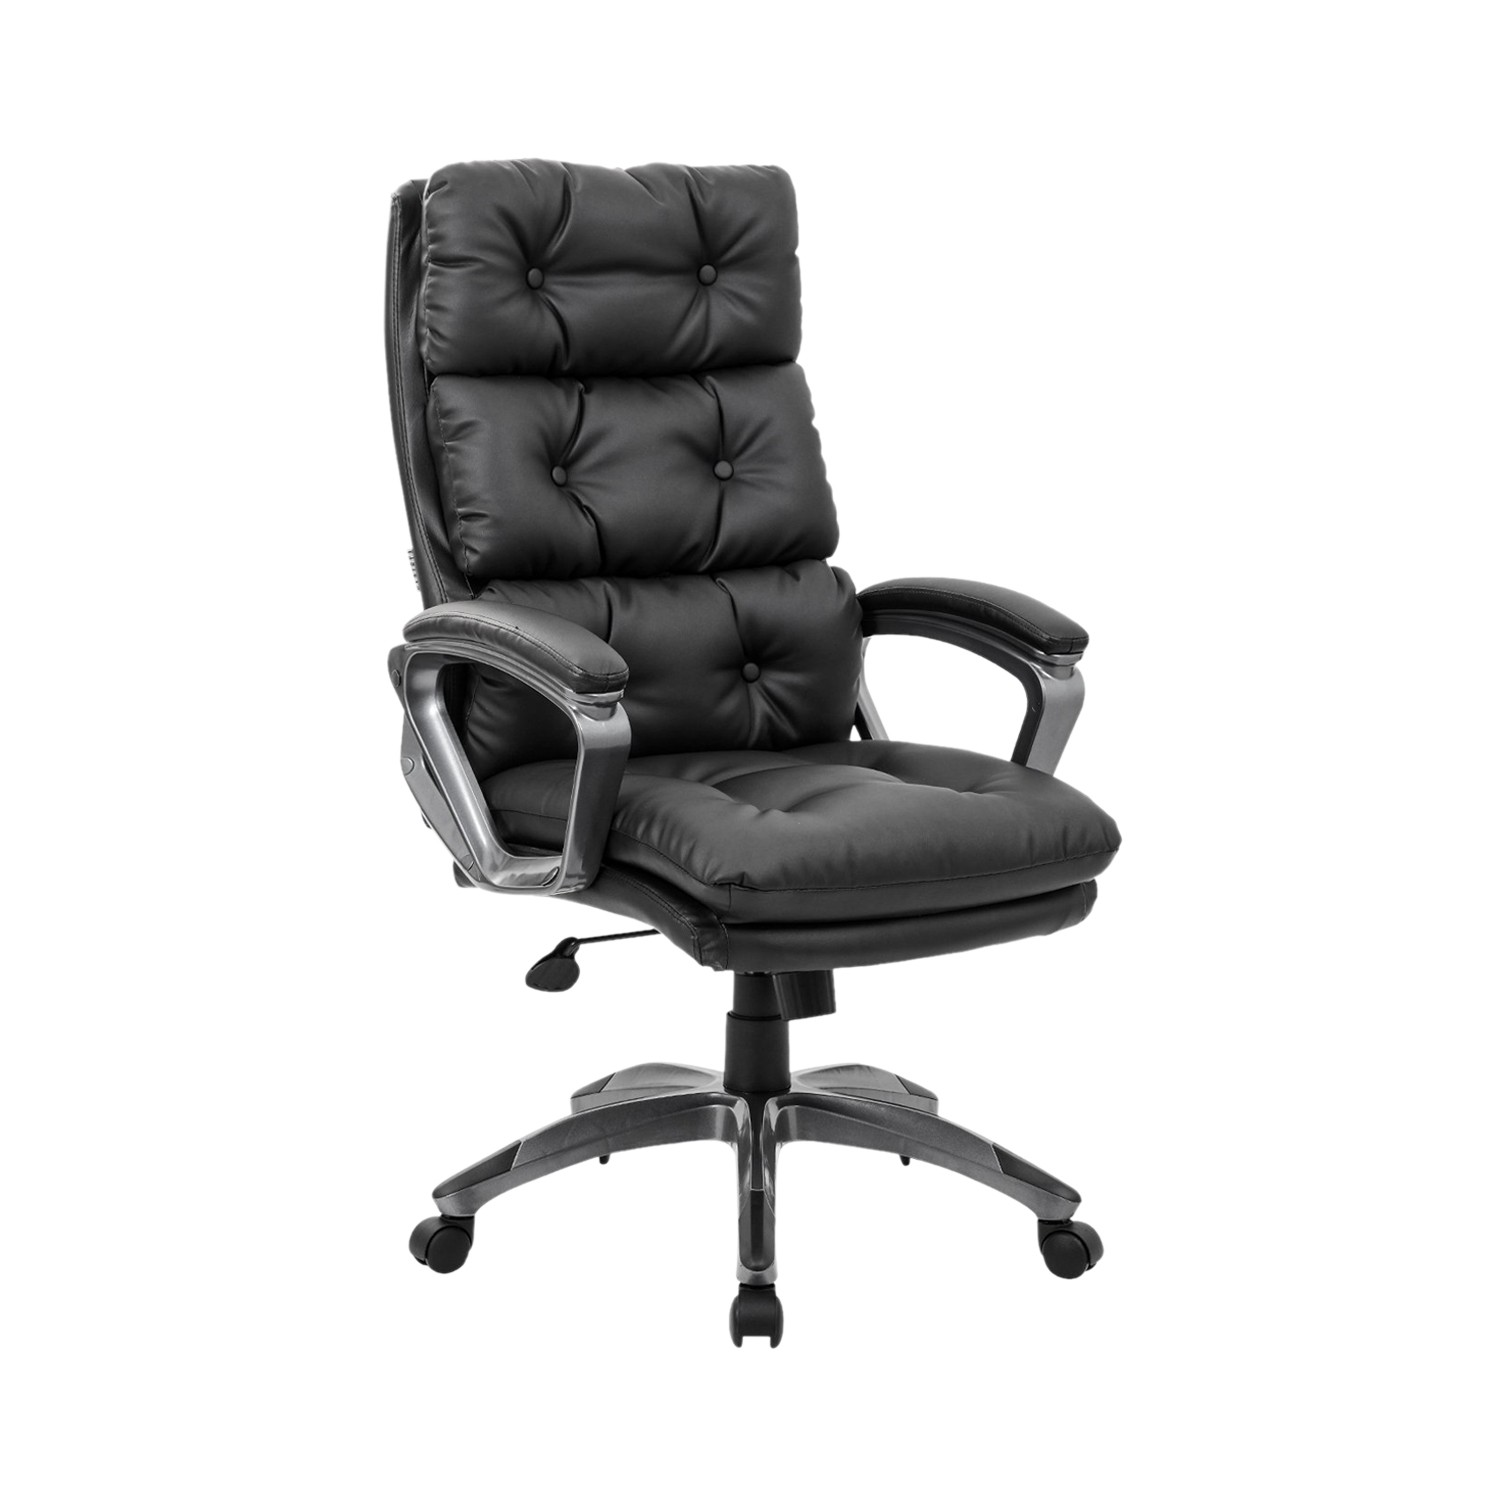 Executive High Back Chair-Deluxe